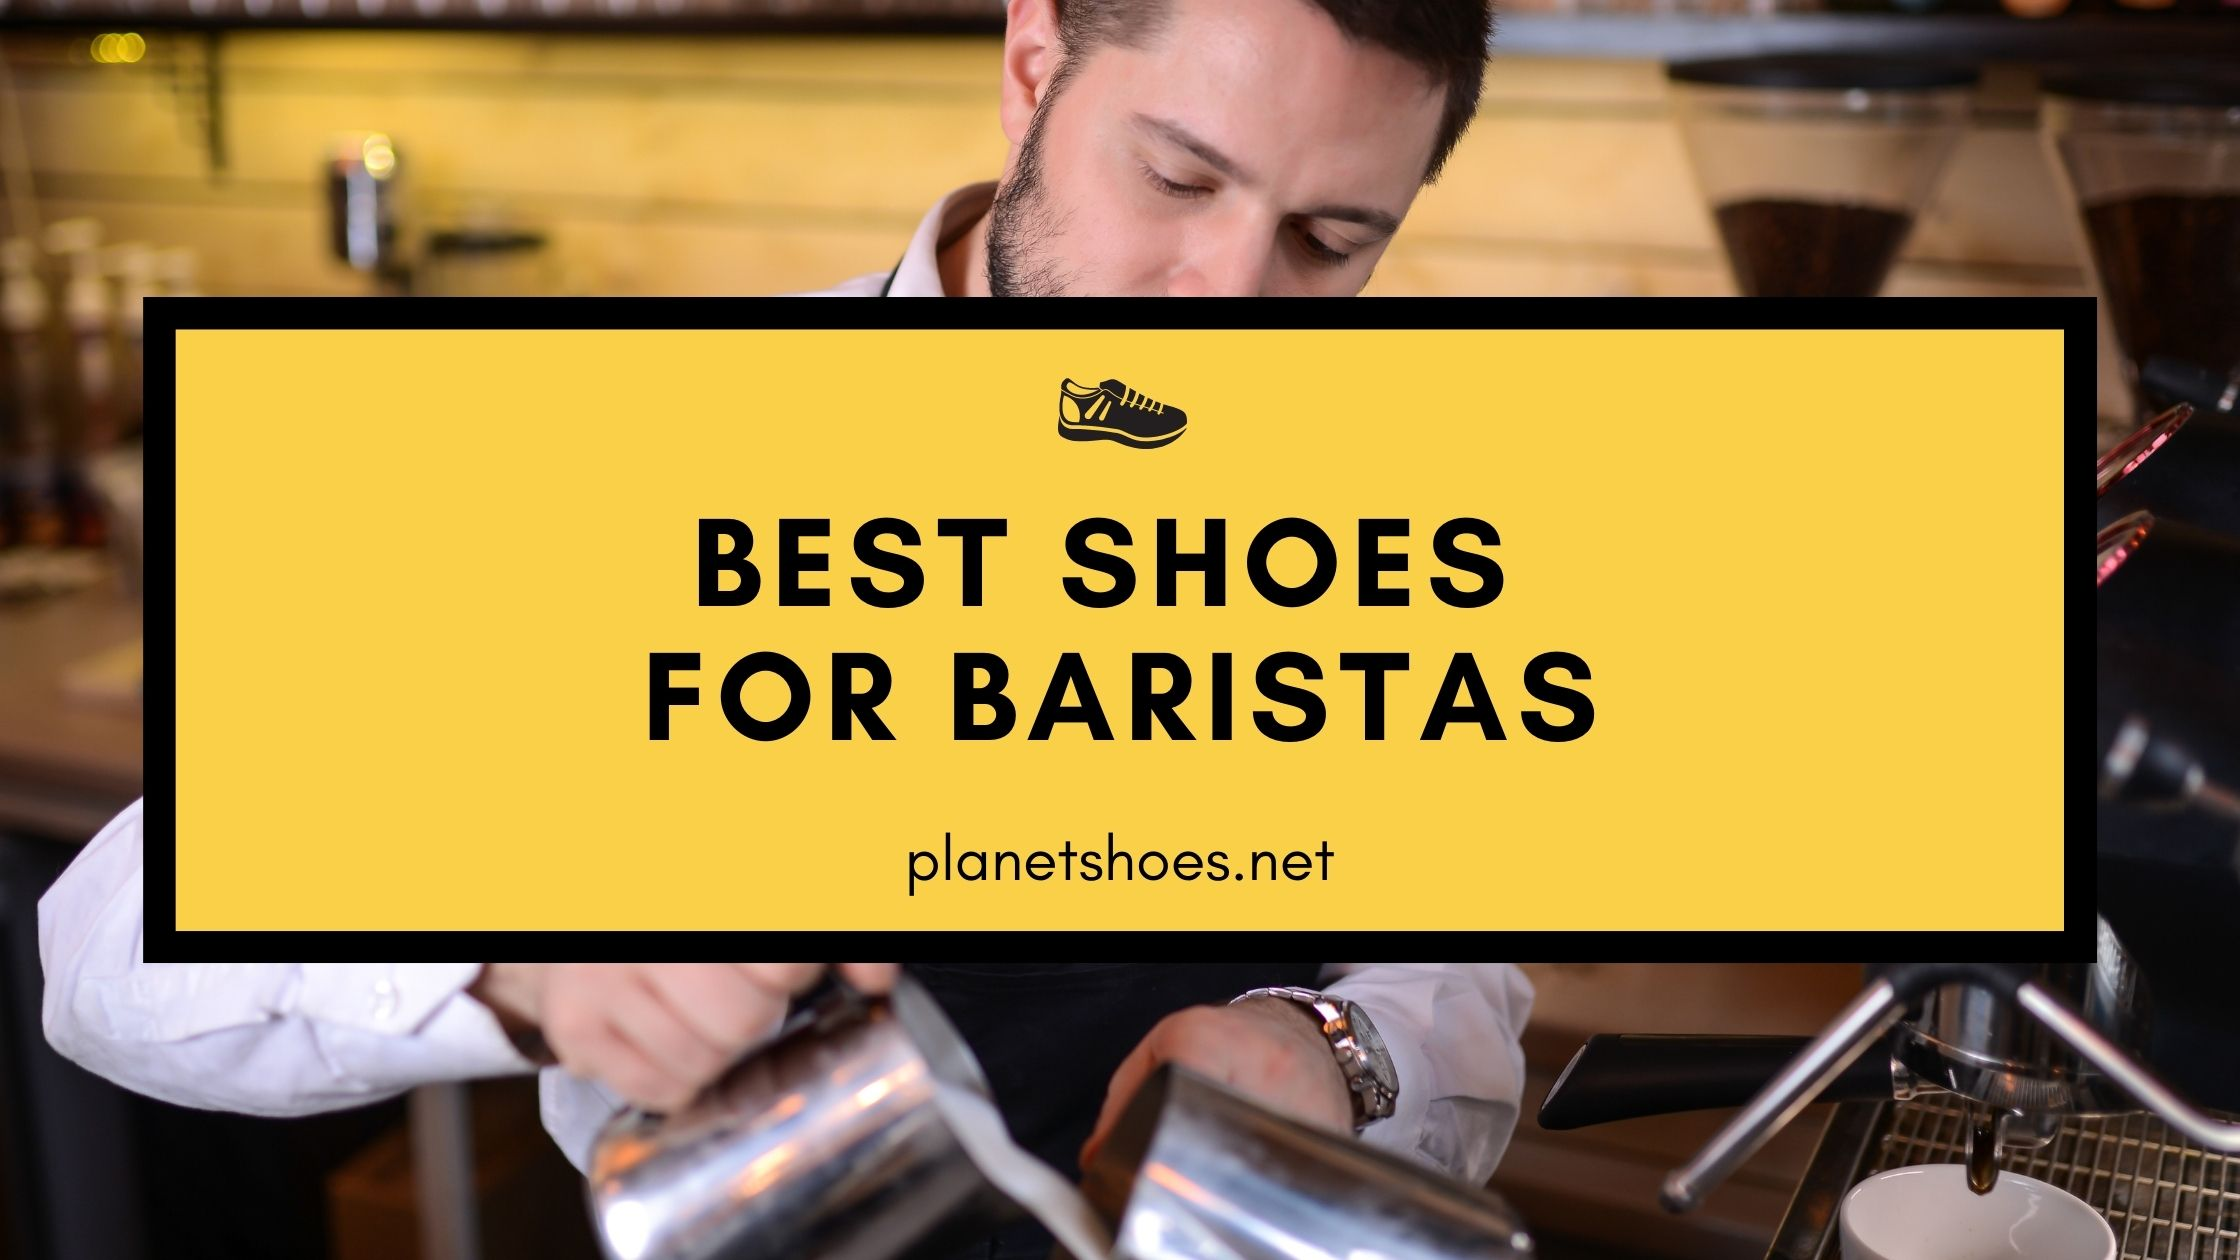 PS-Best-shoes-for-baristas